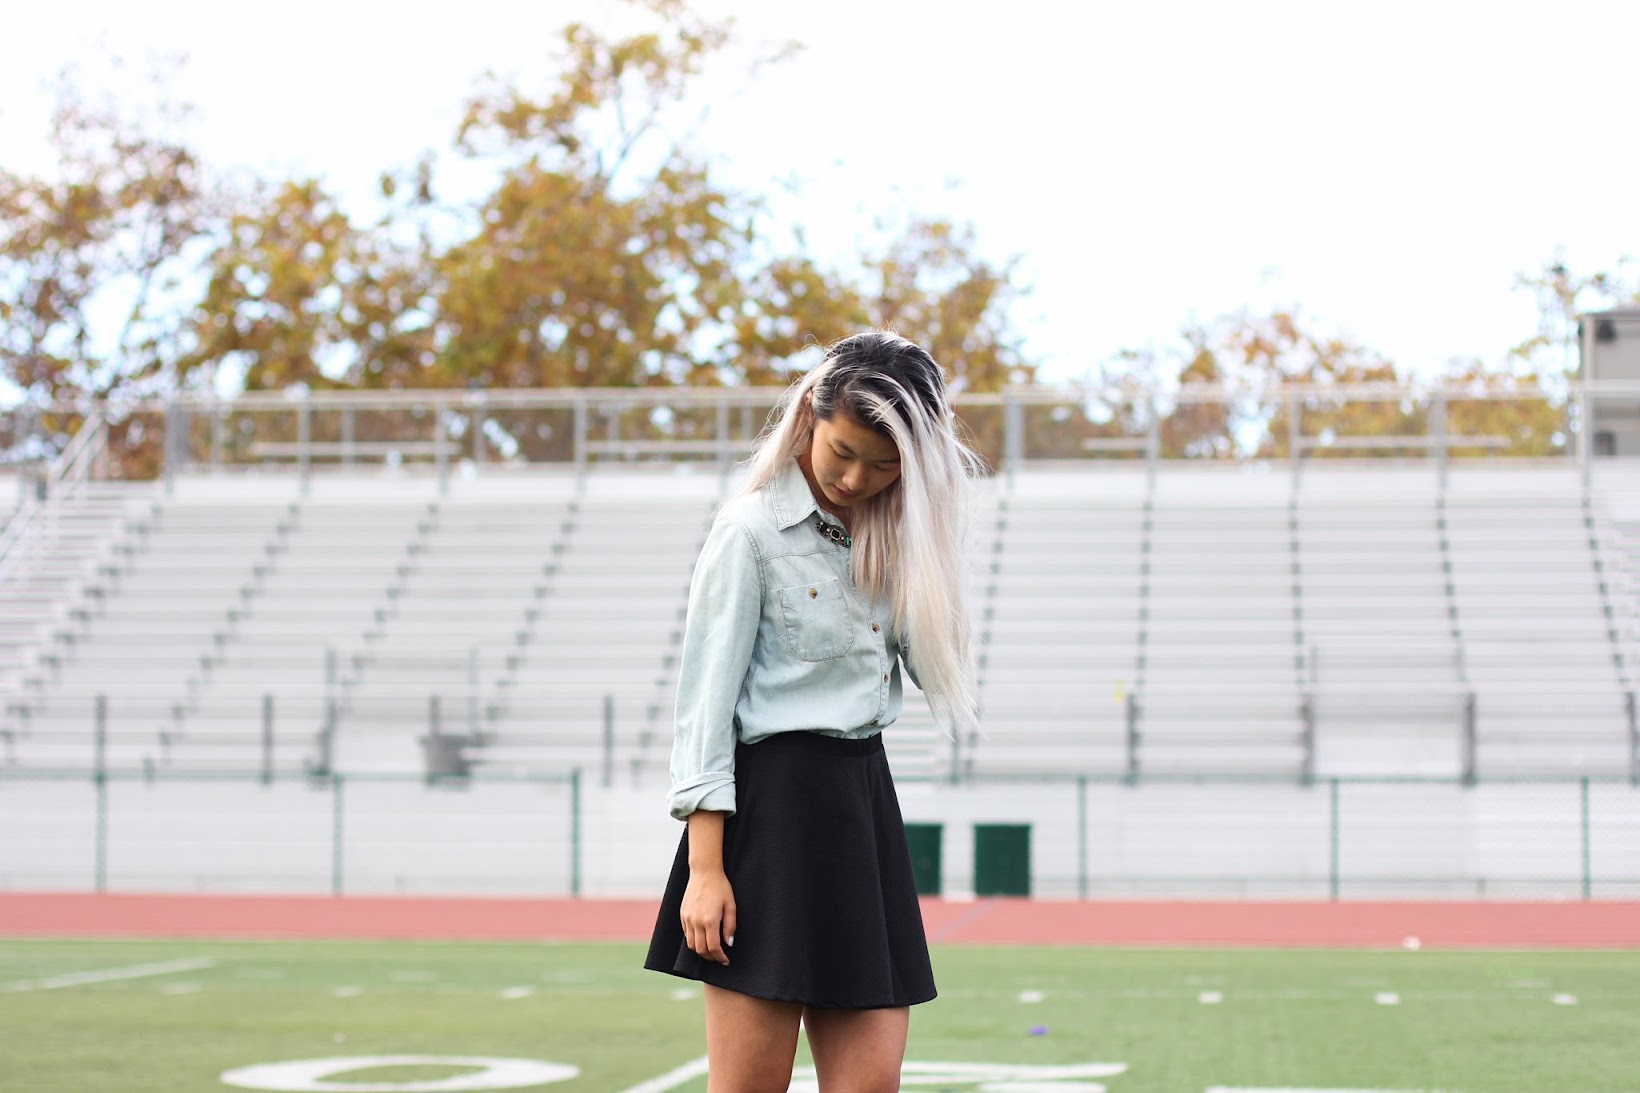 A fall outfit composed in front of some bleachers.